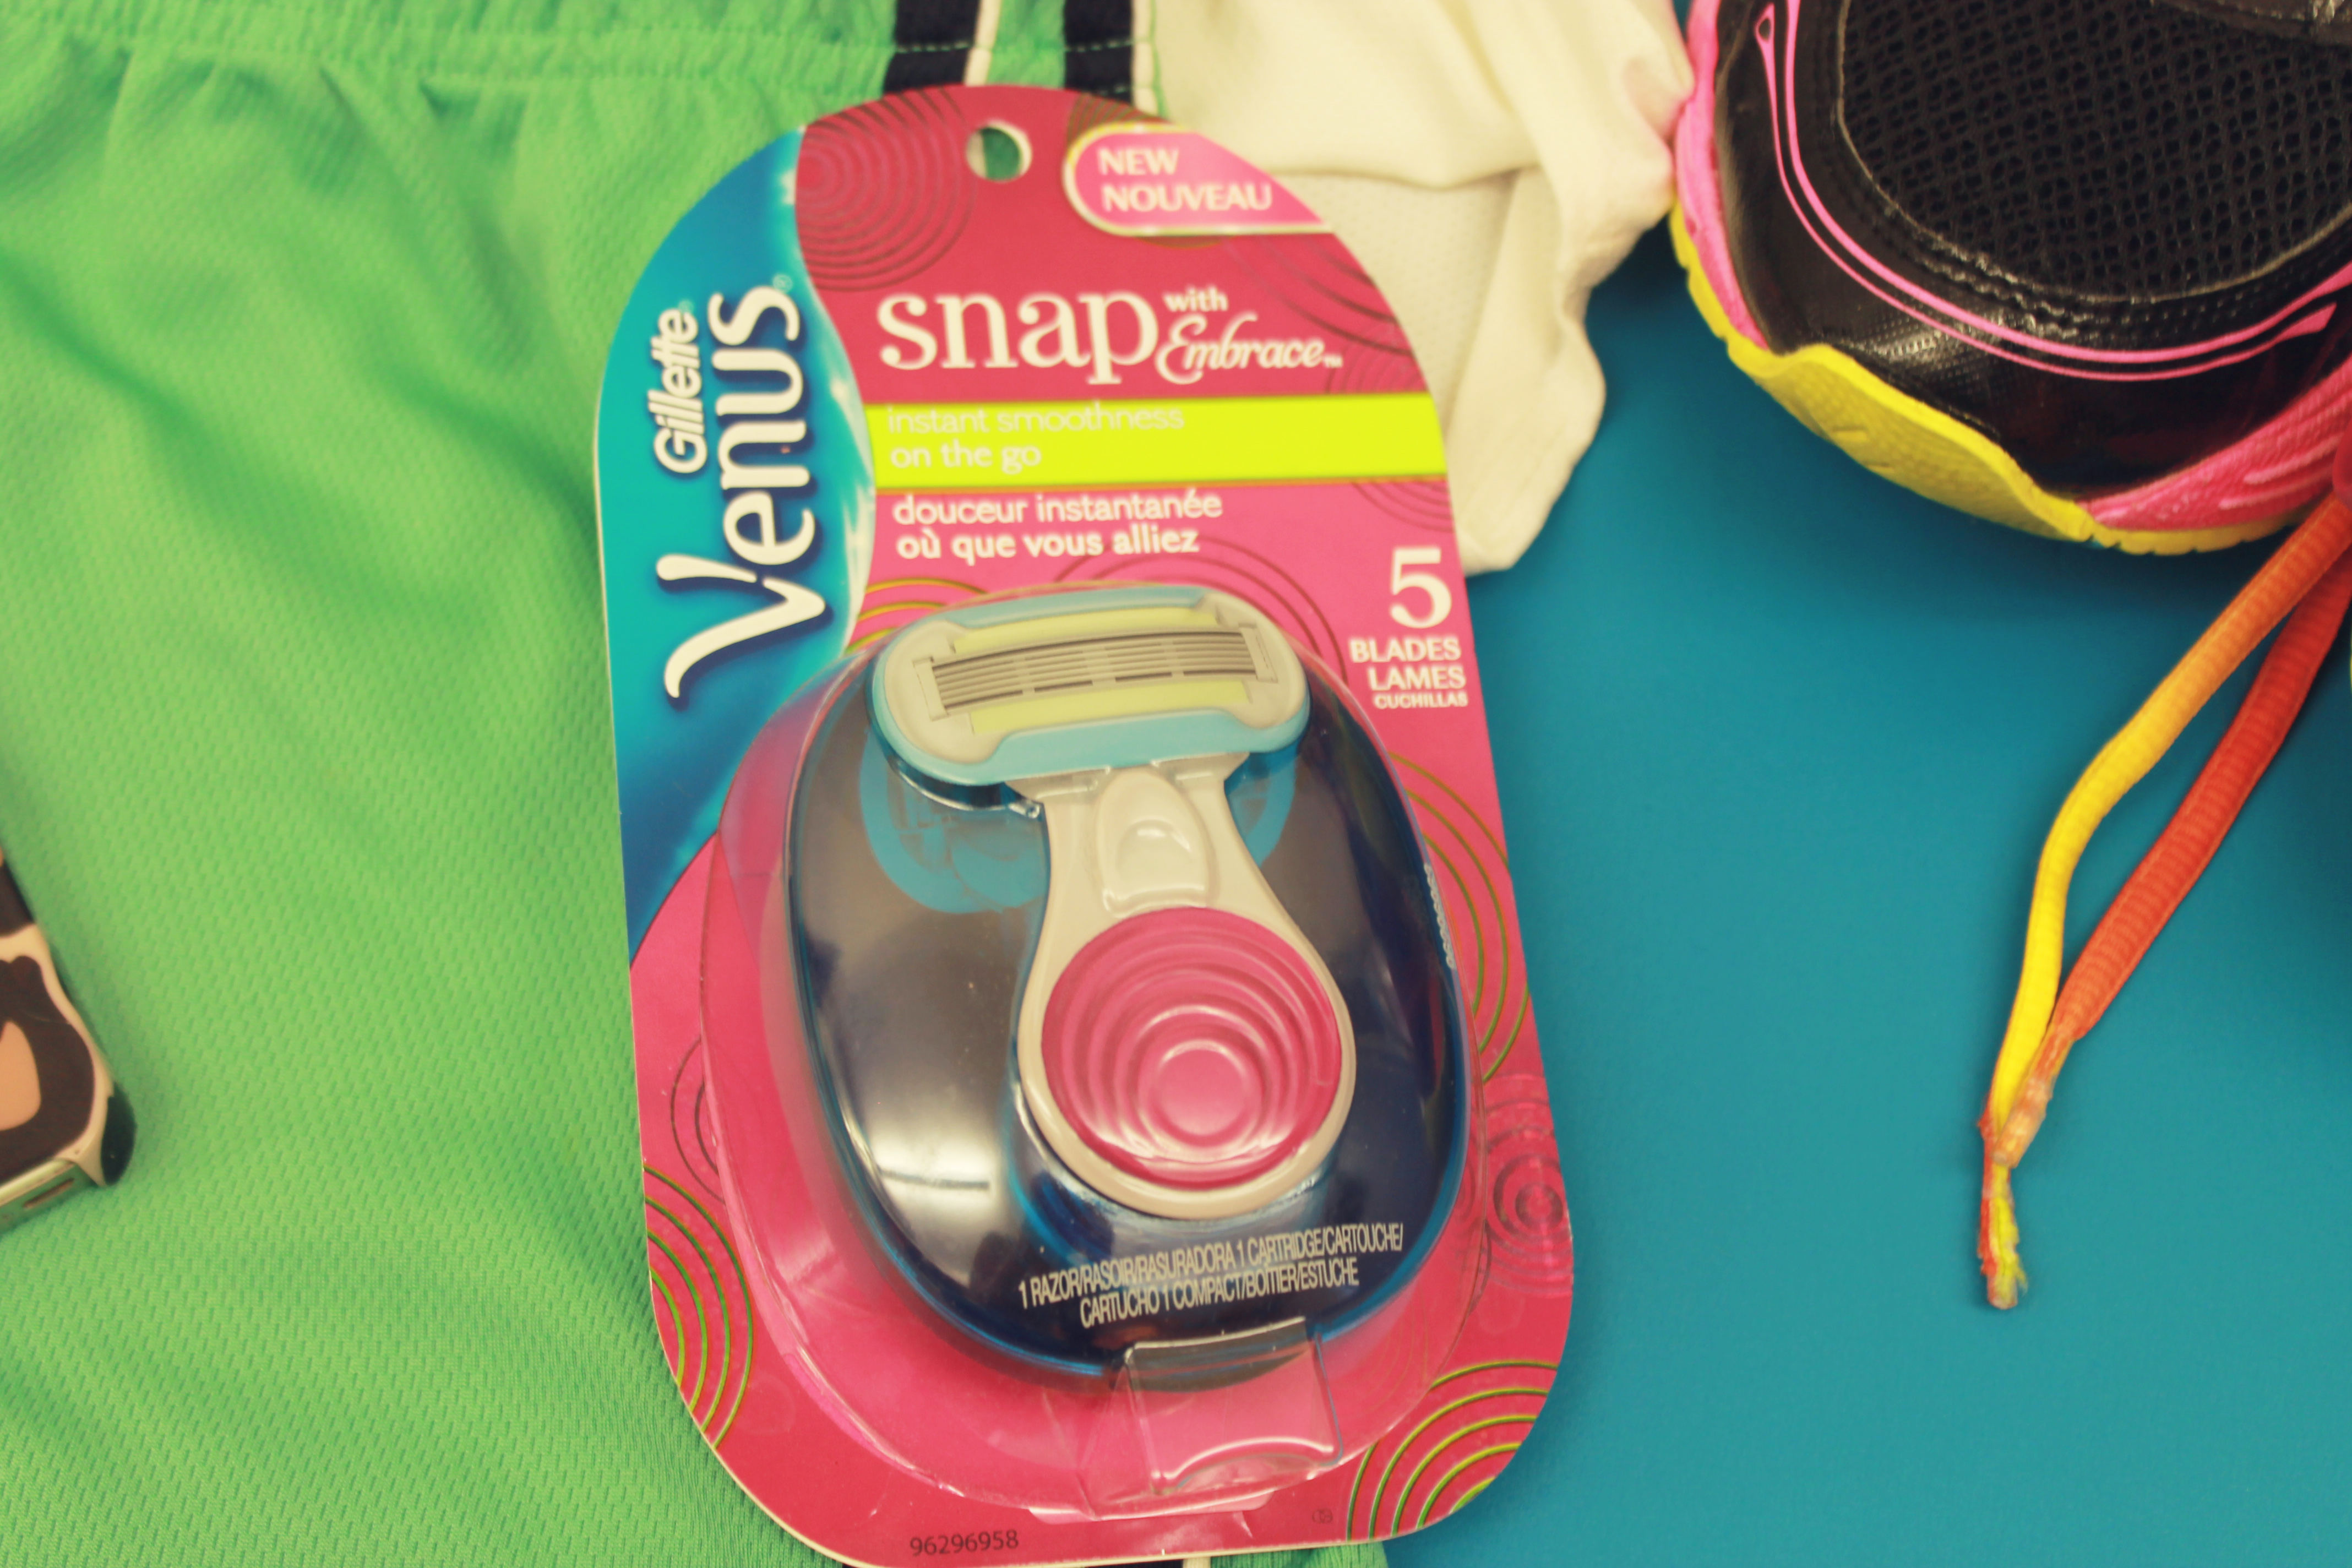 #SnapAtTarget #CleverGirls on-the-go razor, easy to use